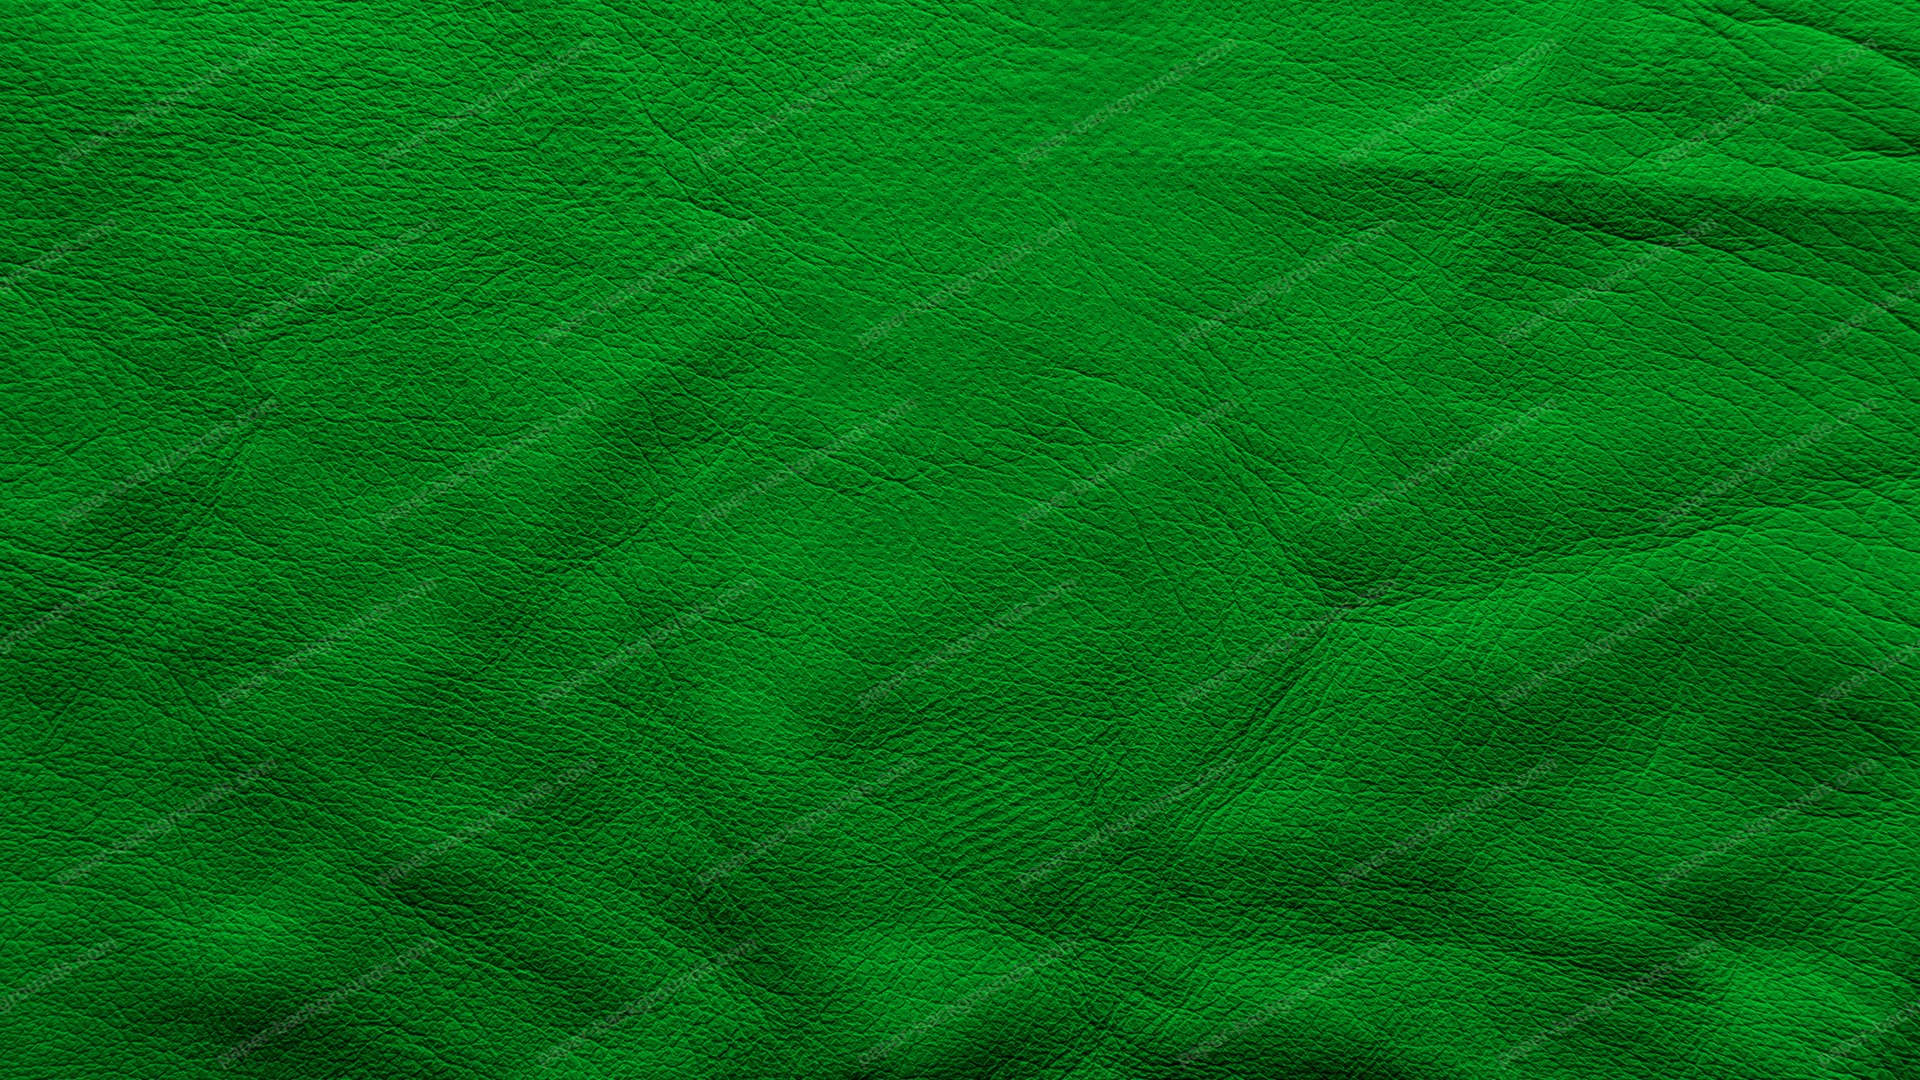 Dark Green Soft Leather Background HD 1920 x 1080p